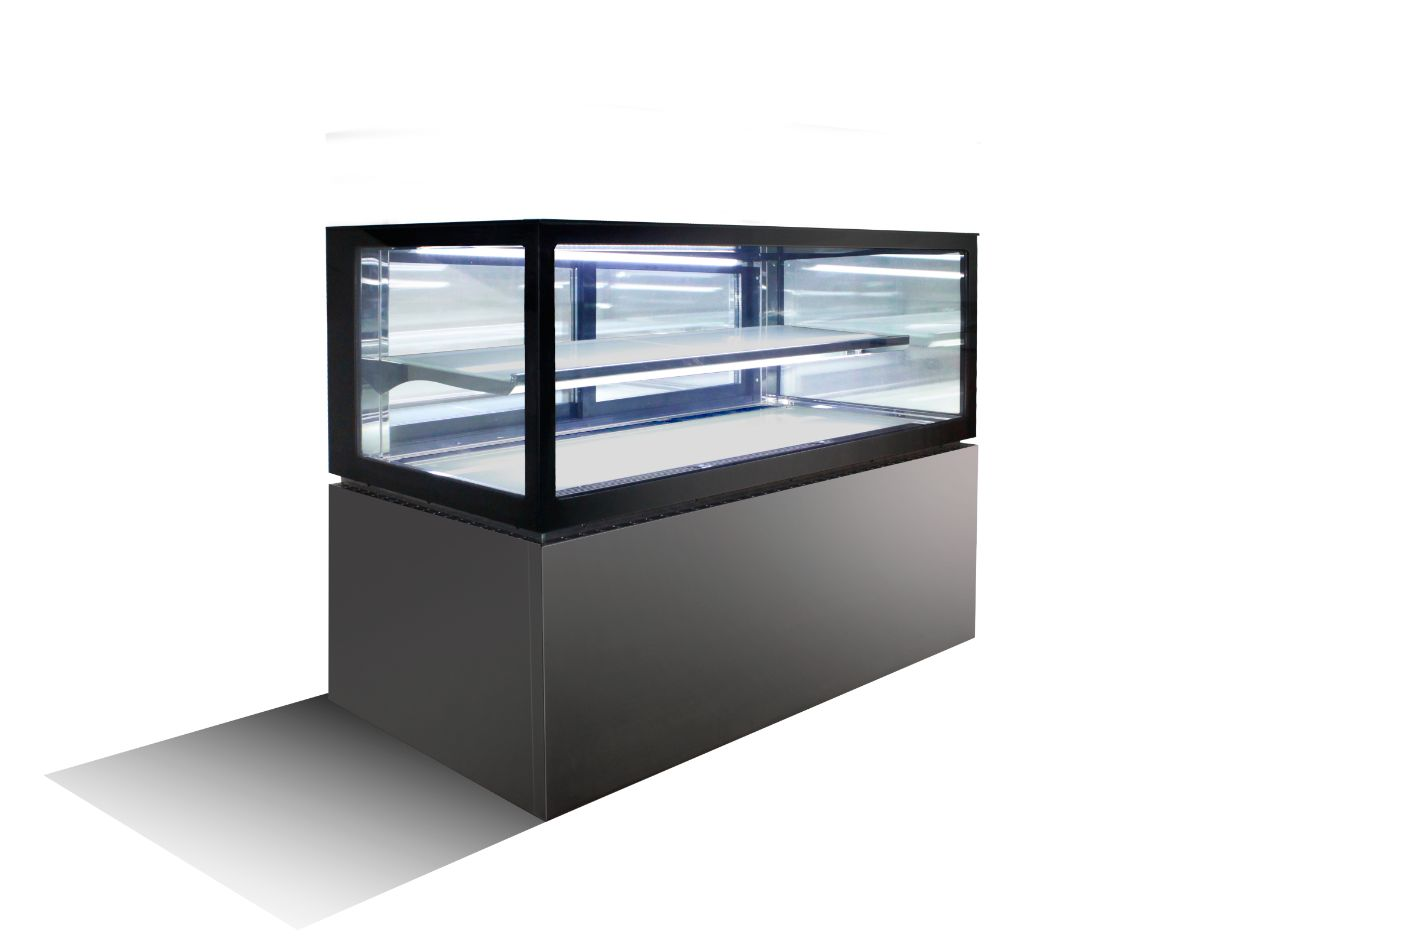 Anvil Aire NDSJ2760 Low Line Jewellery Display 2 Tier 1800mm